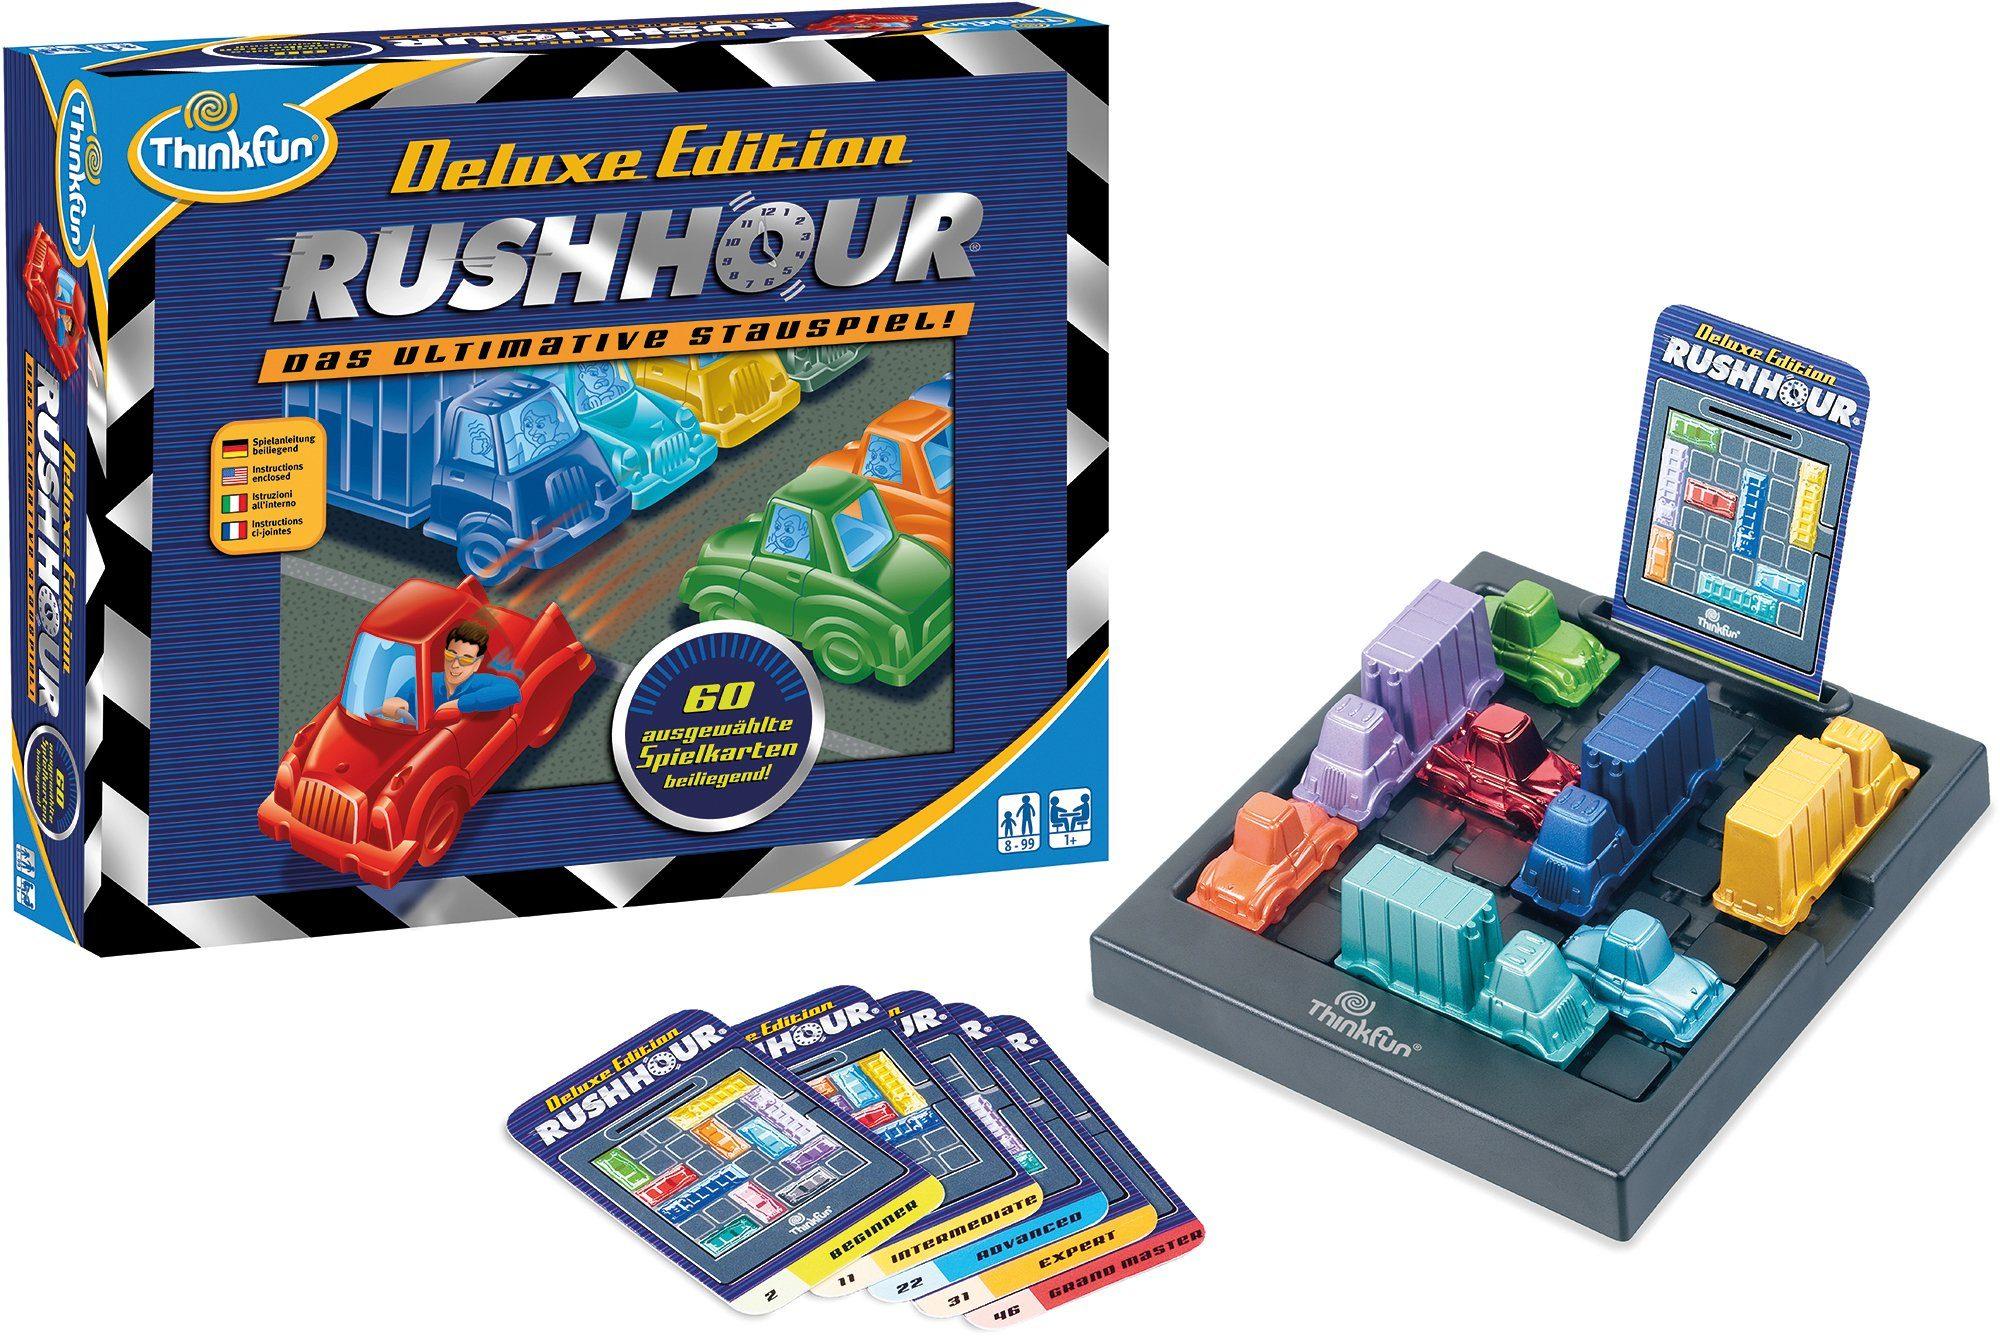 Thinkfun Logikspiel, »Rush Hour deluxe«